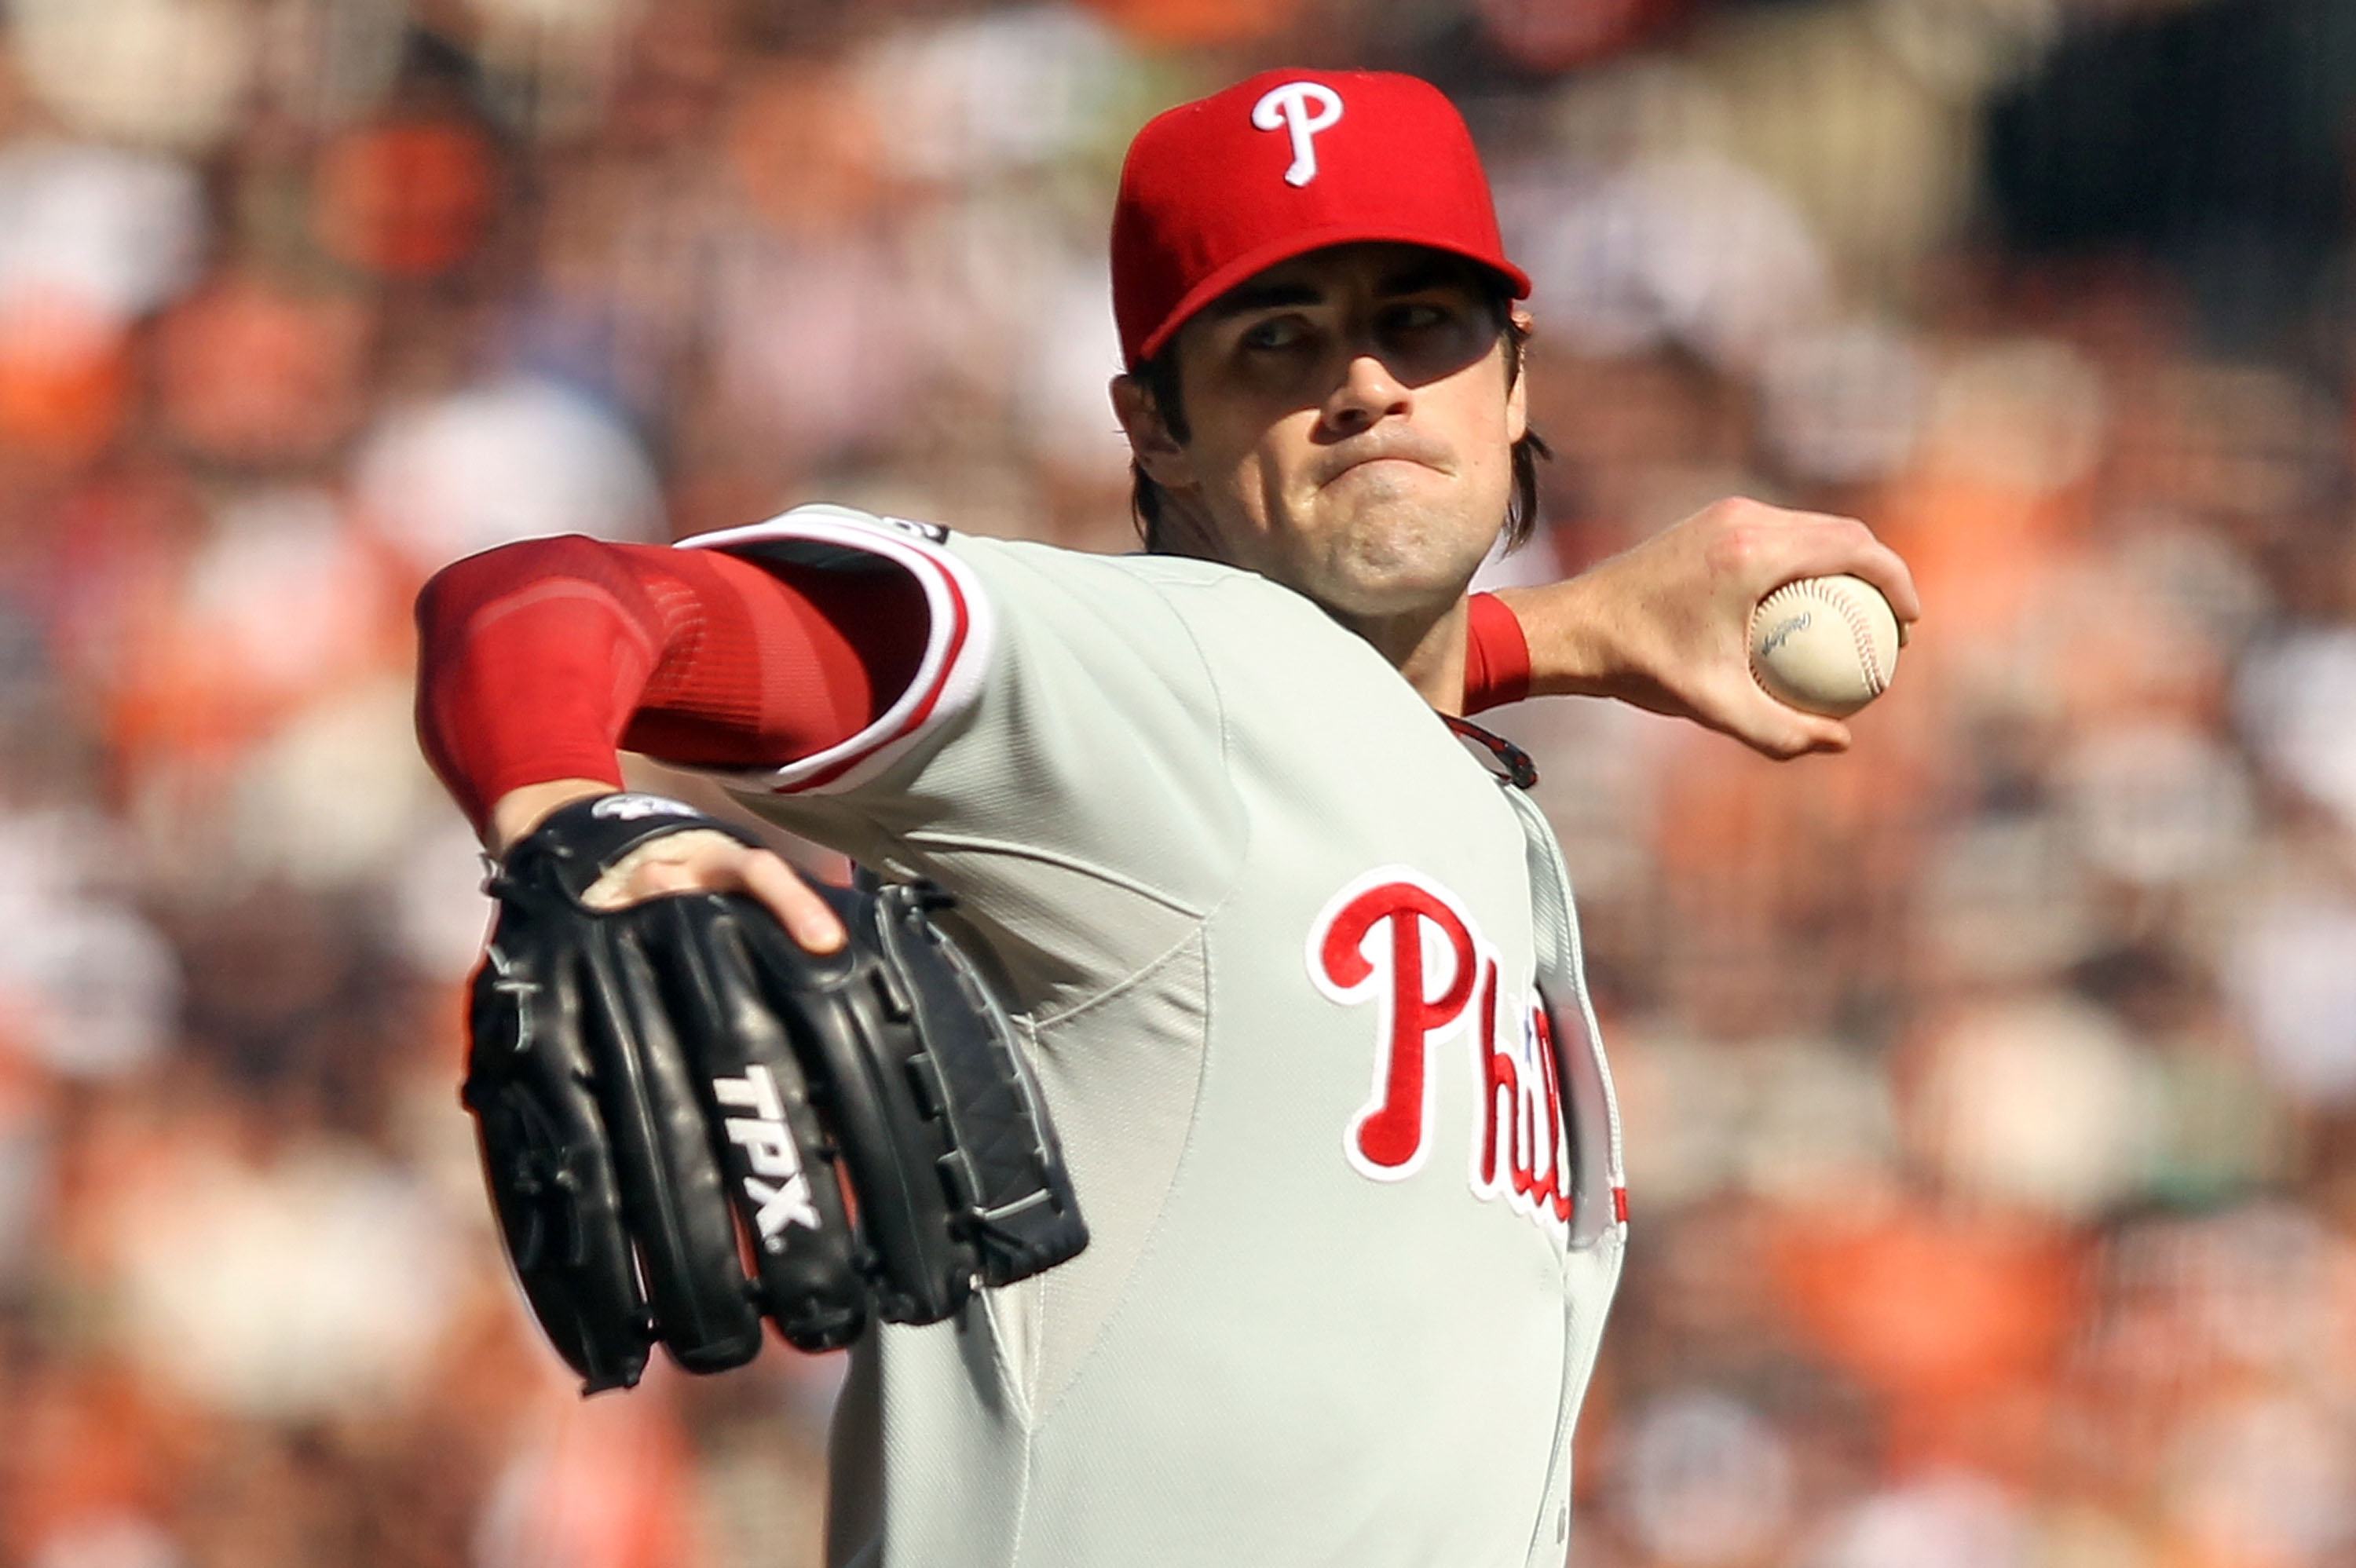 SAN FRANCISCO - OCTOBER 19:  Cole Hamels #35 of the Philadelphia Phillies throws a pitch against the San Francisco Giants in Game Three of the NLCS during the 2010 MLB Playoffs at AT&T Park on October 19, 2010 in San Francisco, California.  (Photo by Ezra